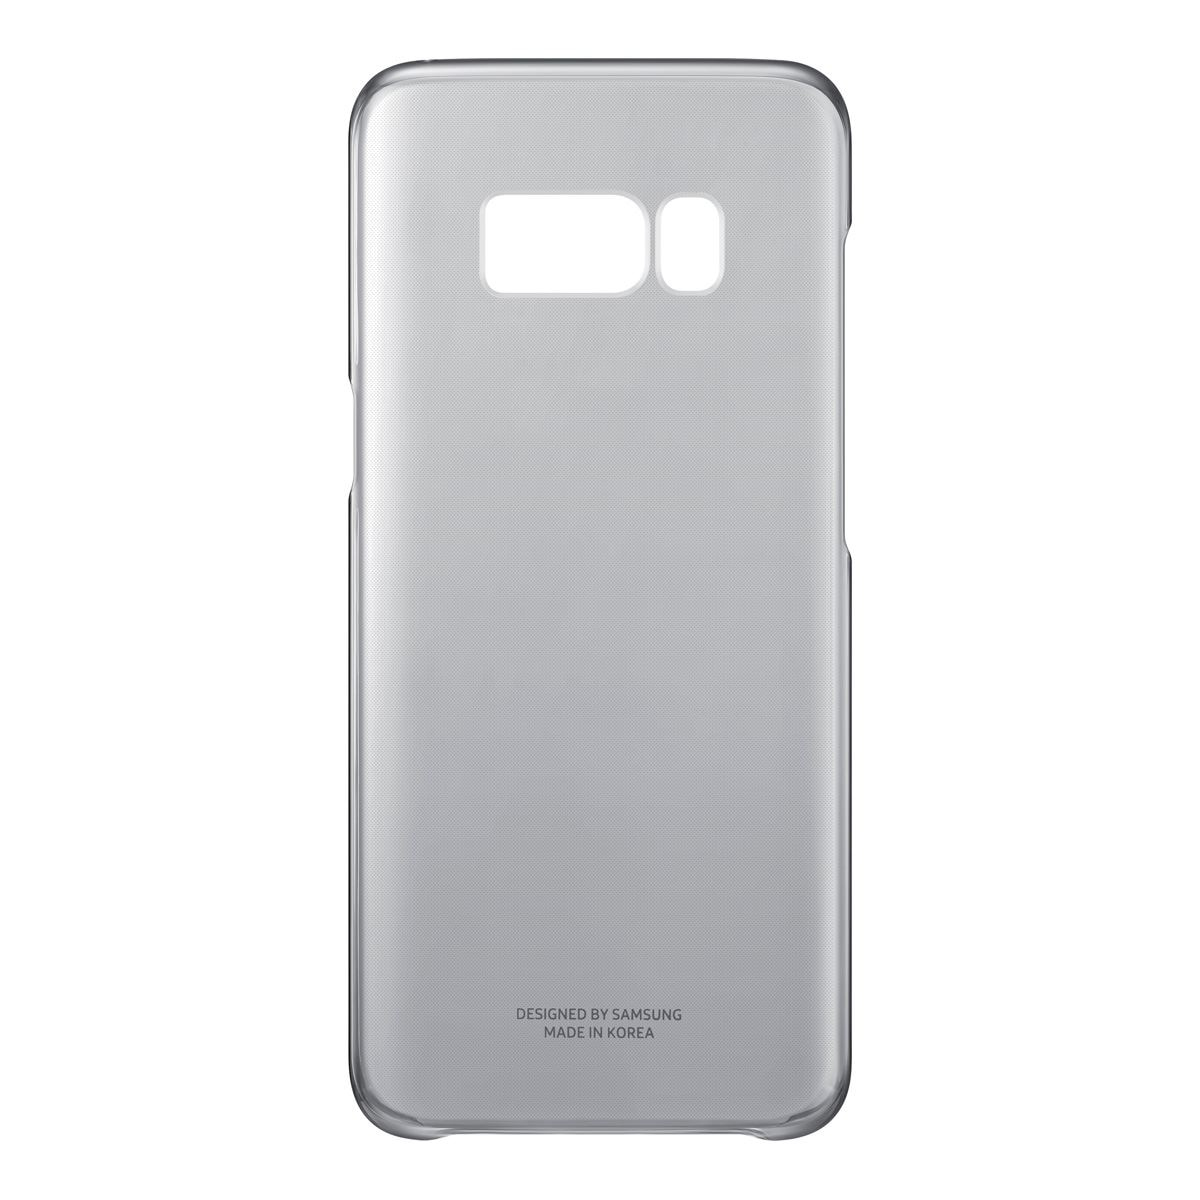 Funda s8 edge negro clear cover  - Sanborns